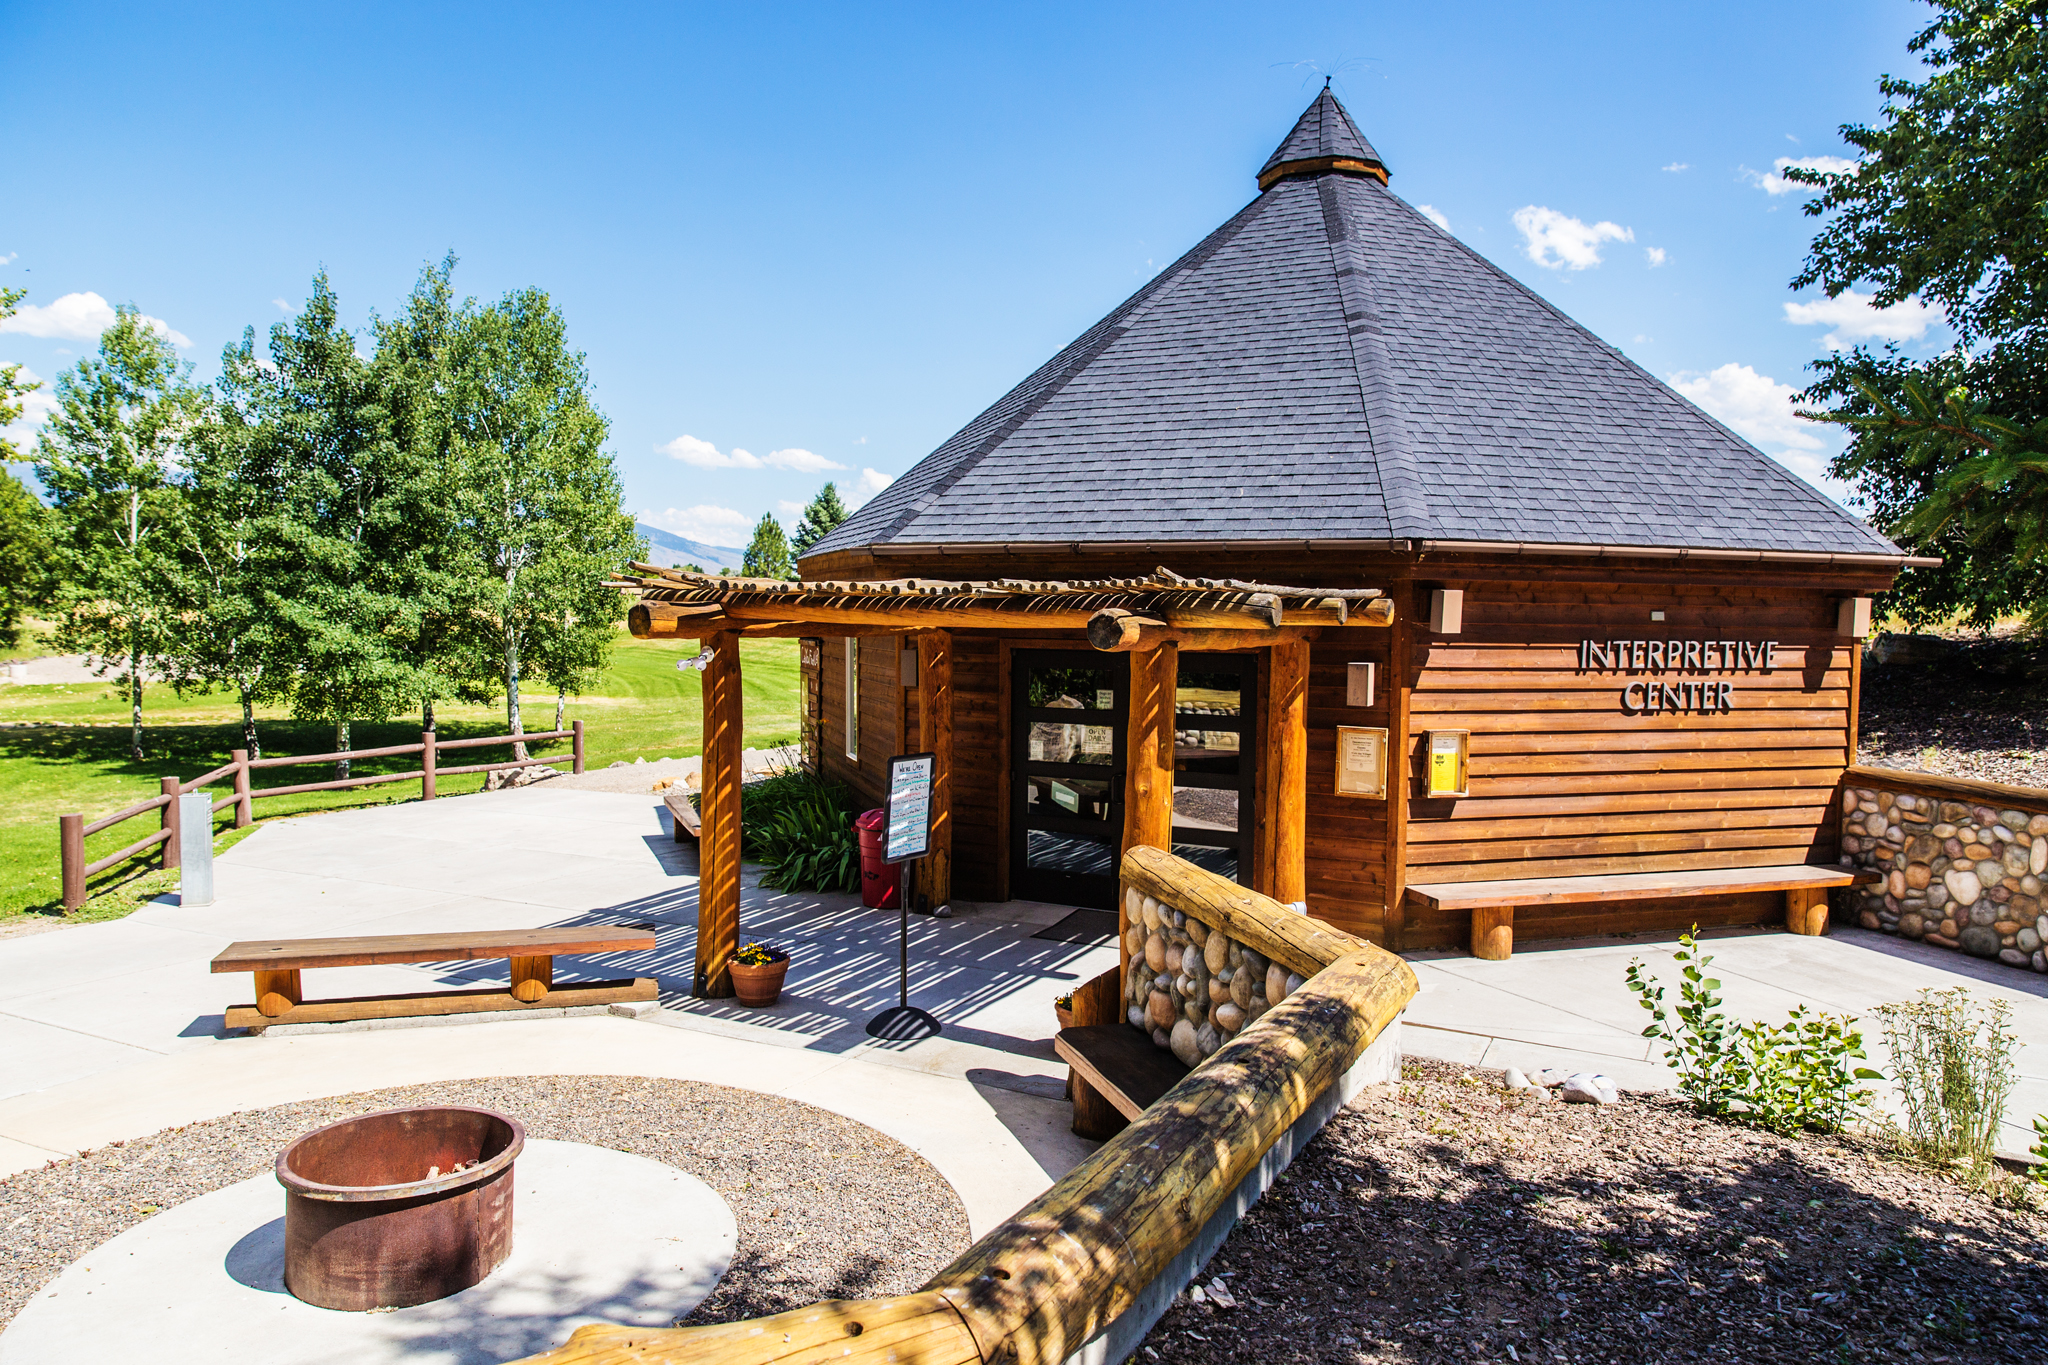 Sacajawea Visitor Center